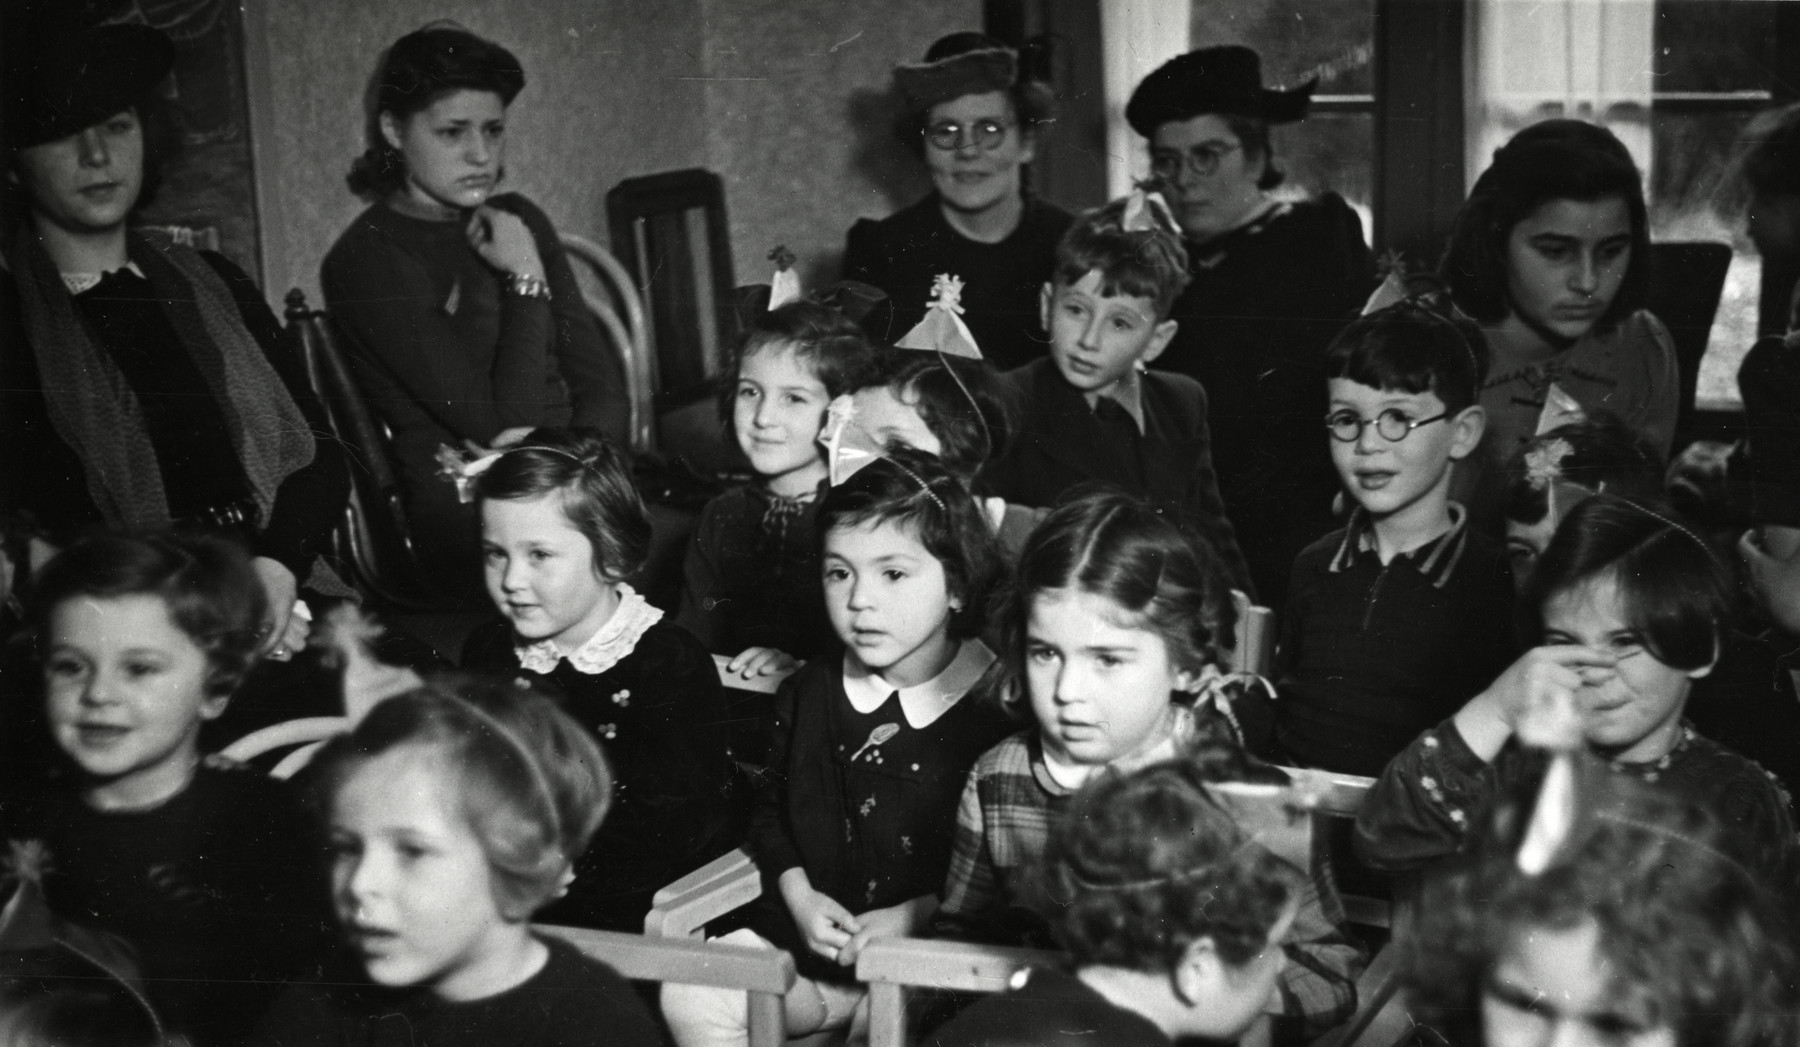 Young children attend a Hanukkah celebration in the Jewish school in Amsterdam.